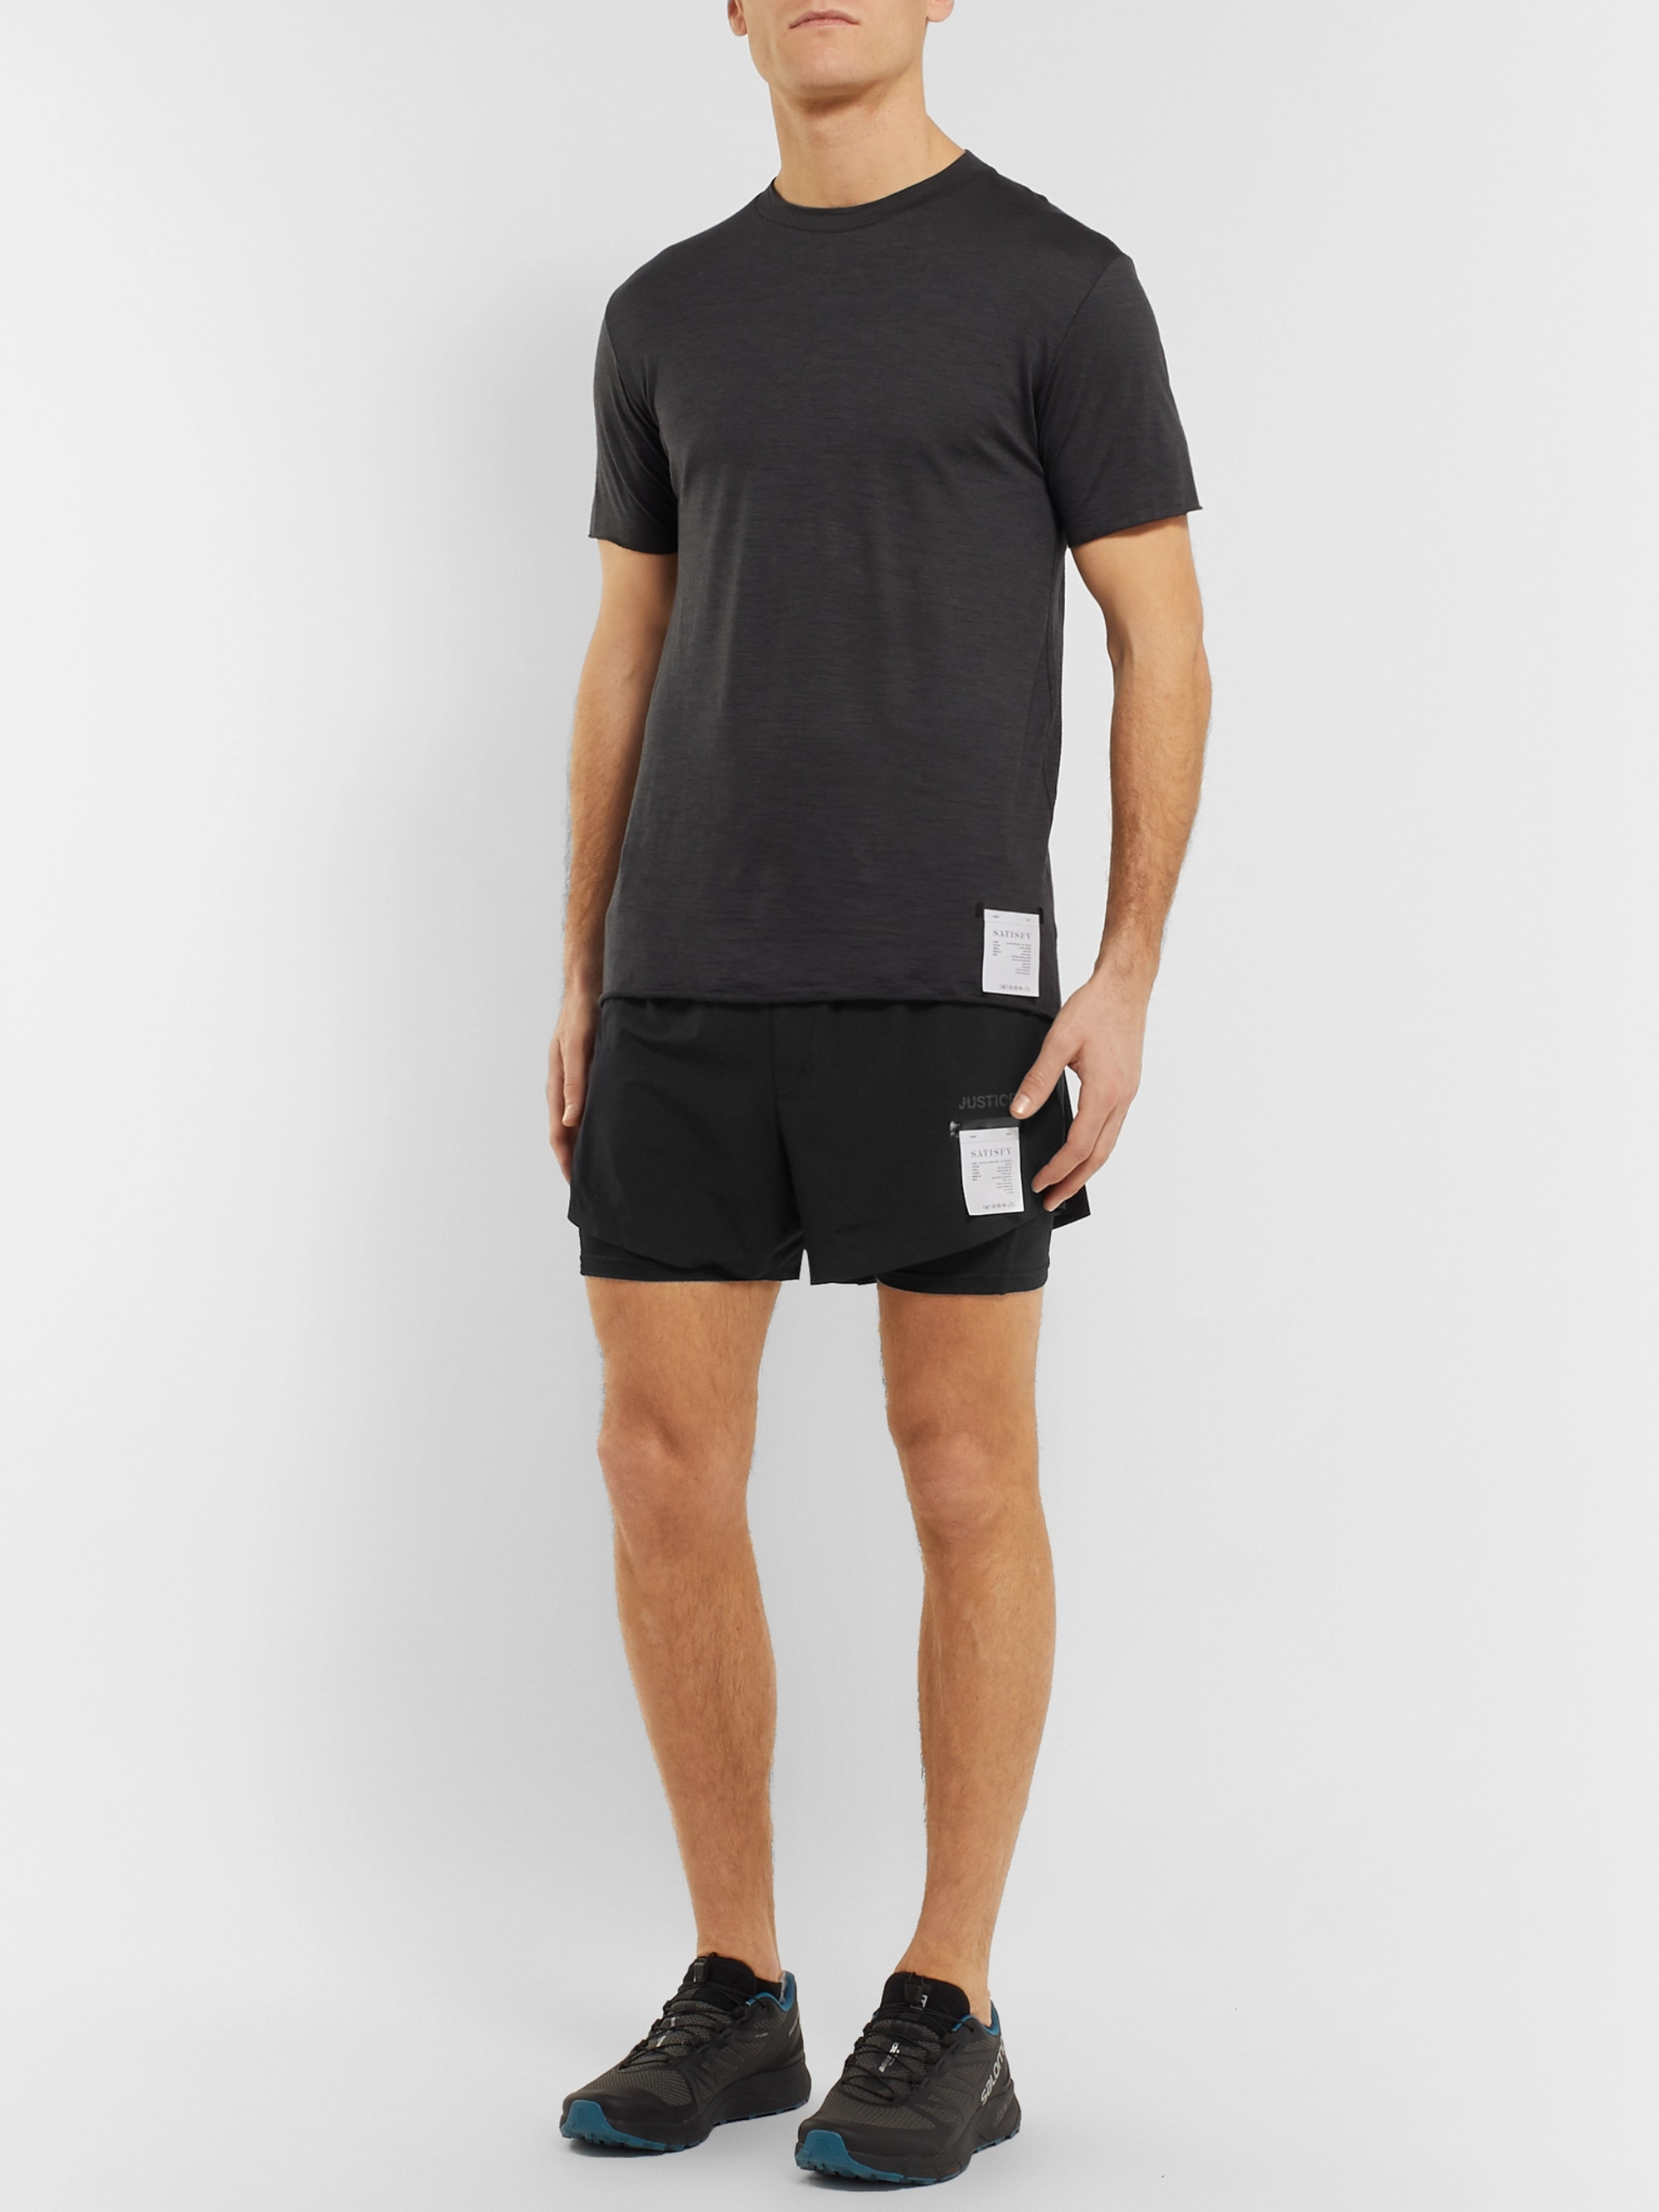 Satisfy Justice Running Shorts